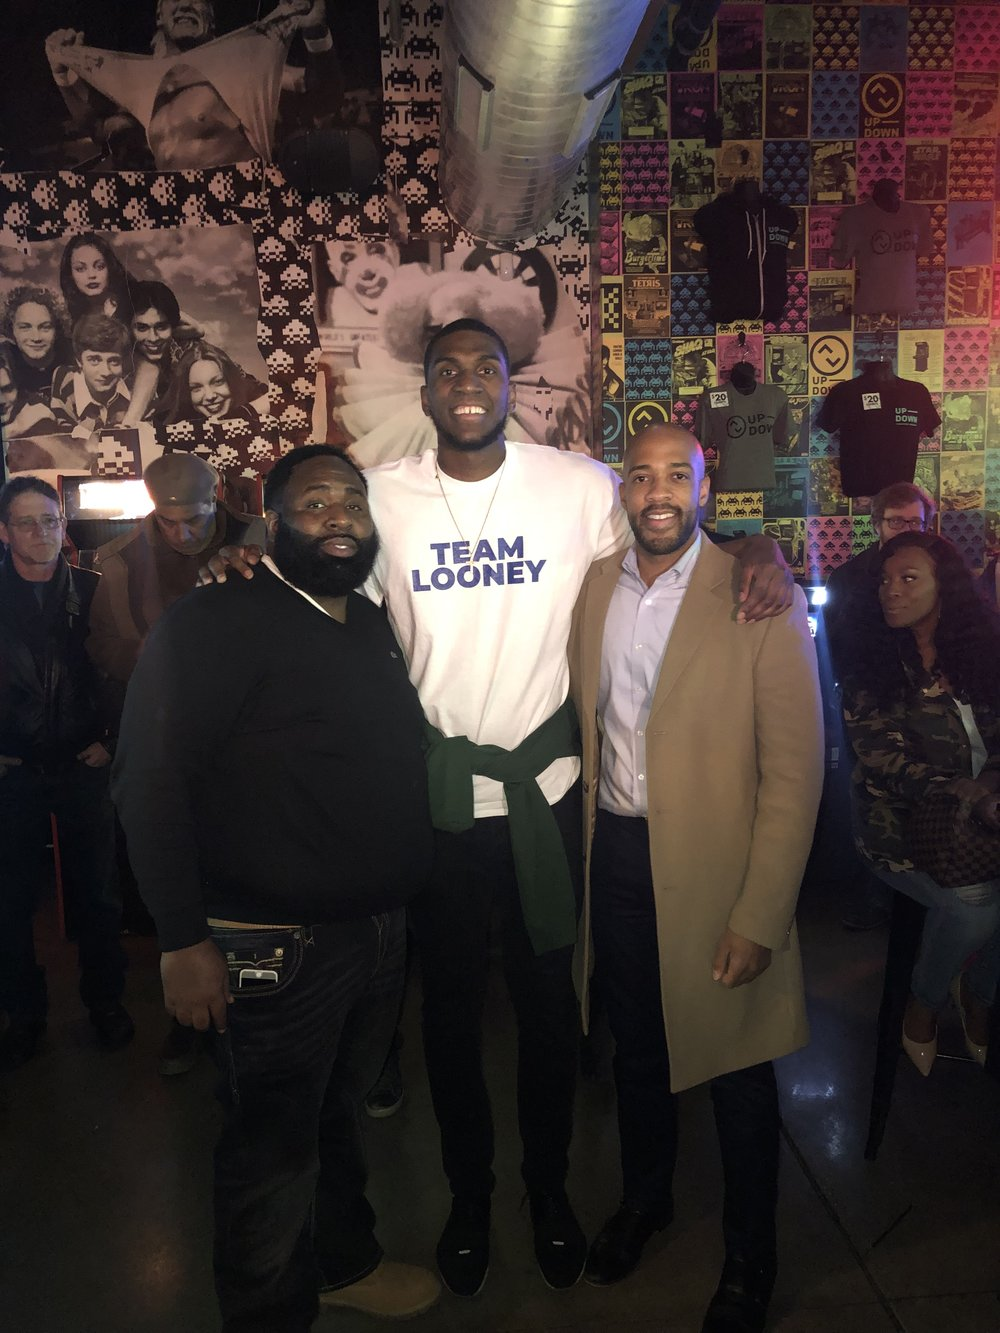 Ward Jenkins (Kevon Looney's manager), Kevon Looney and Mandela Barnes (WI Lt.-elect) (Picture provided by Ward Jenkins)